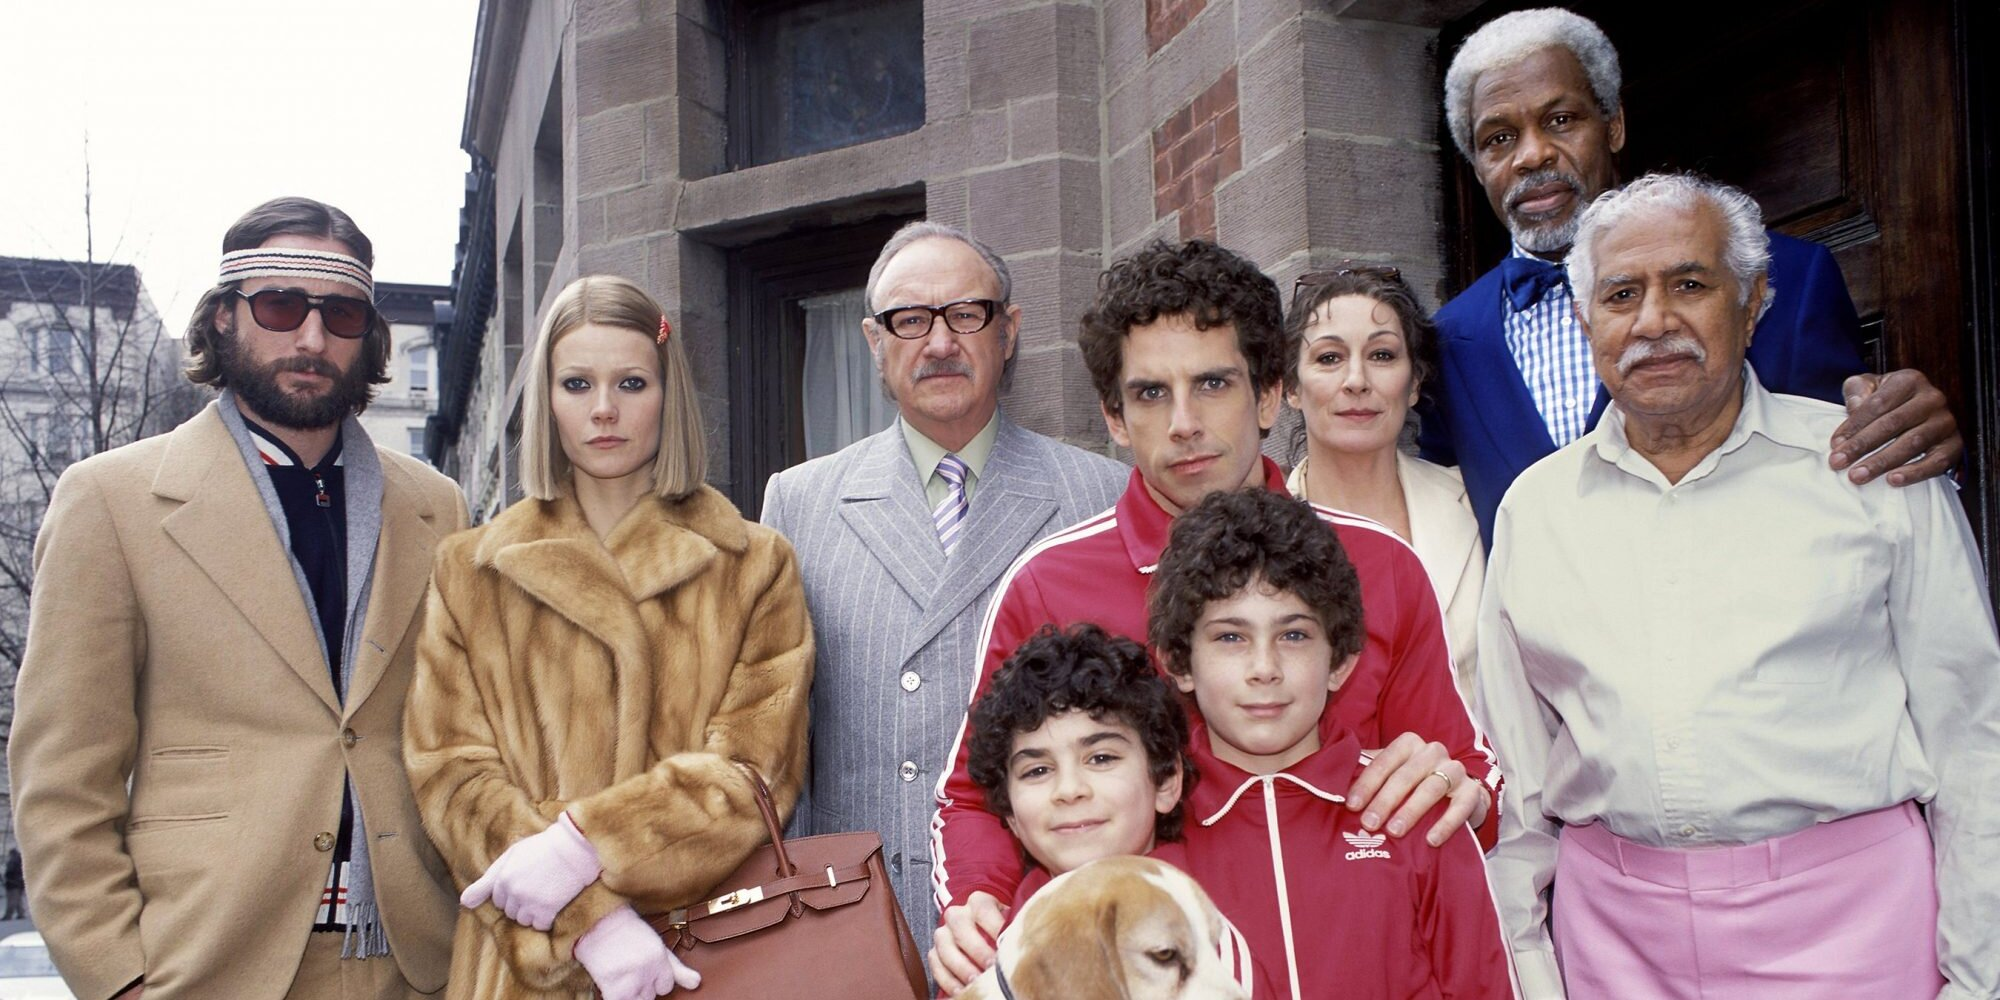 'Fargo,' 'Royal Tenenbaums' reunions set for Tribeca Film Festival